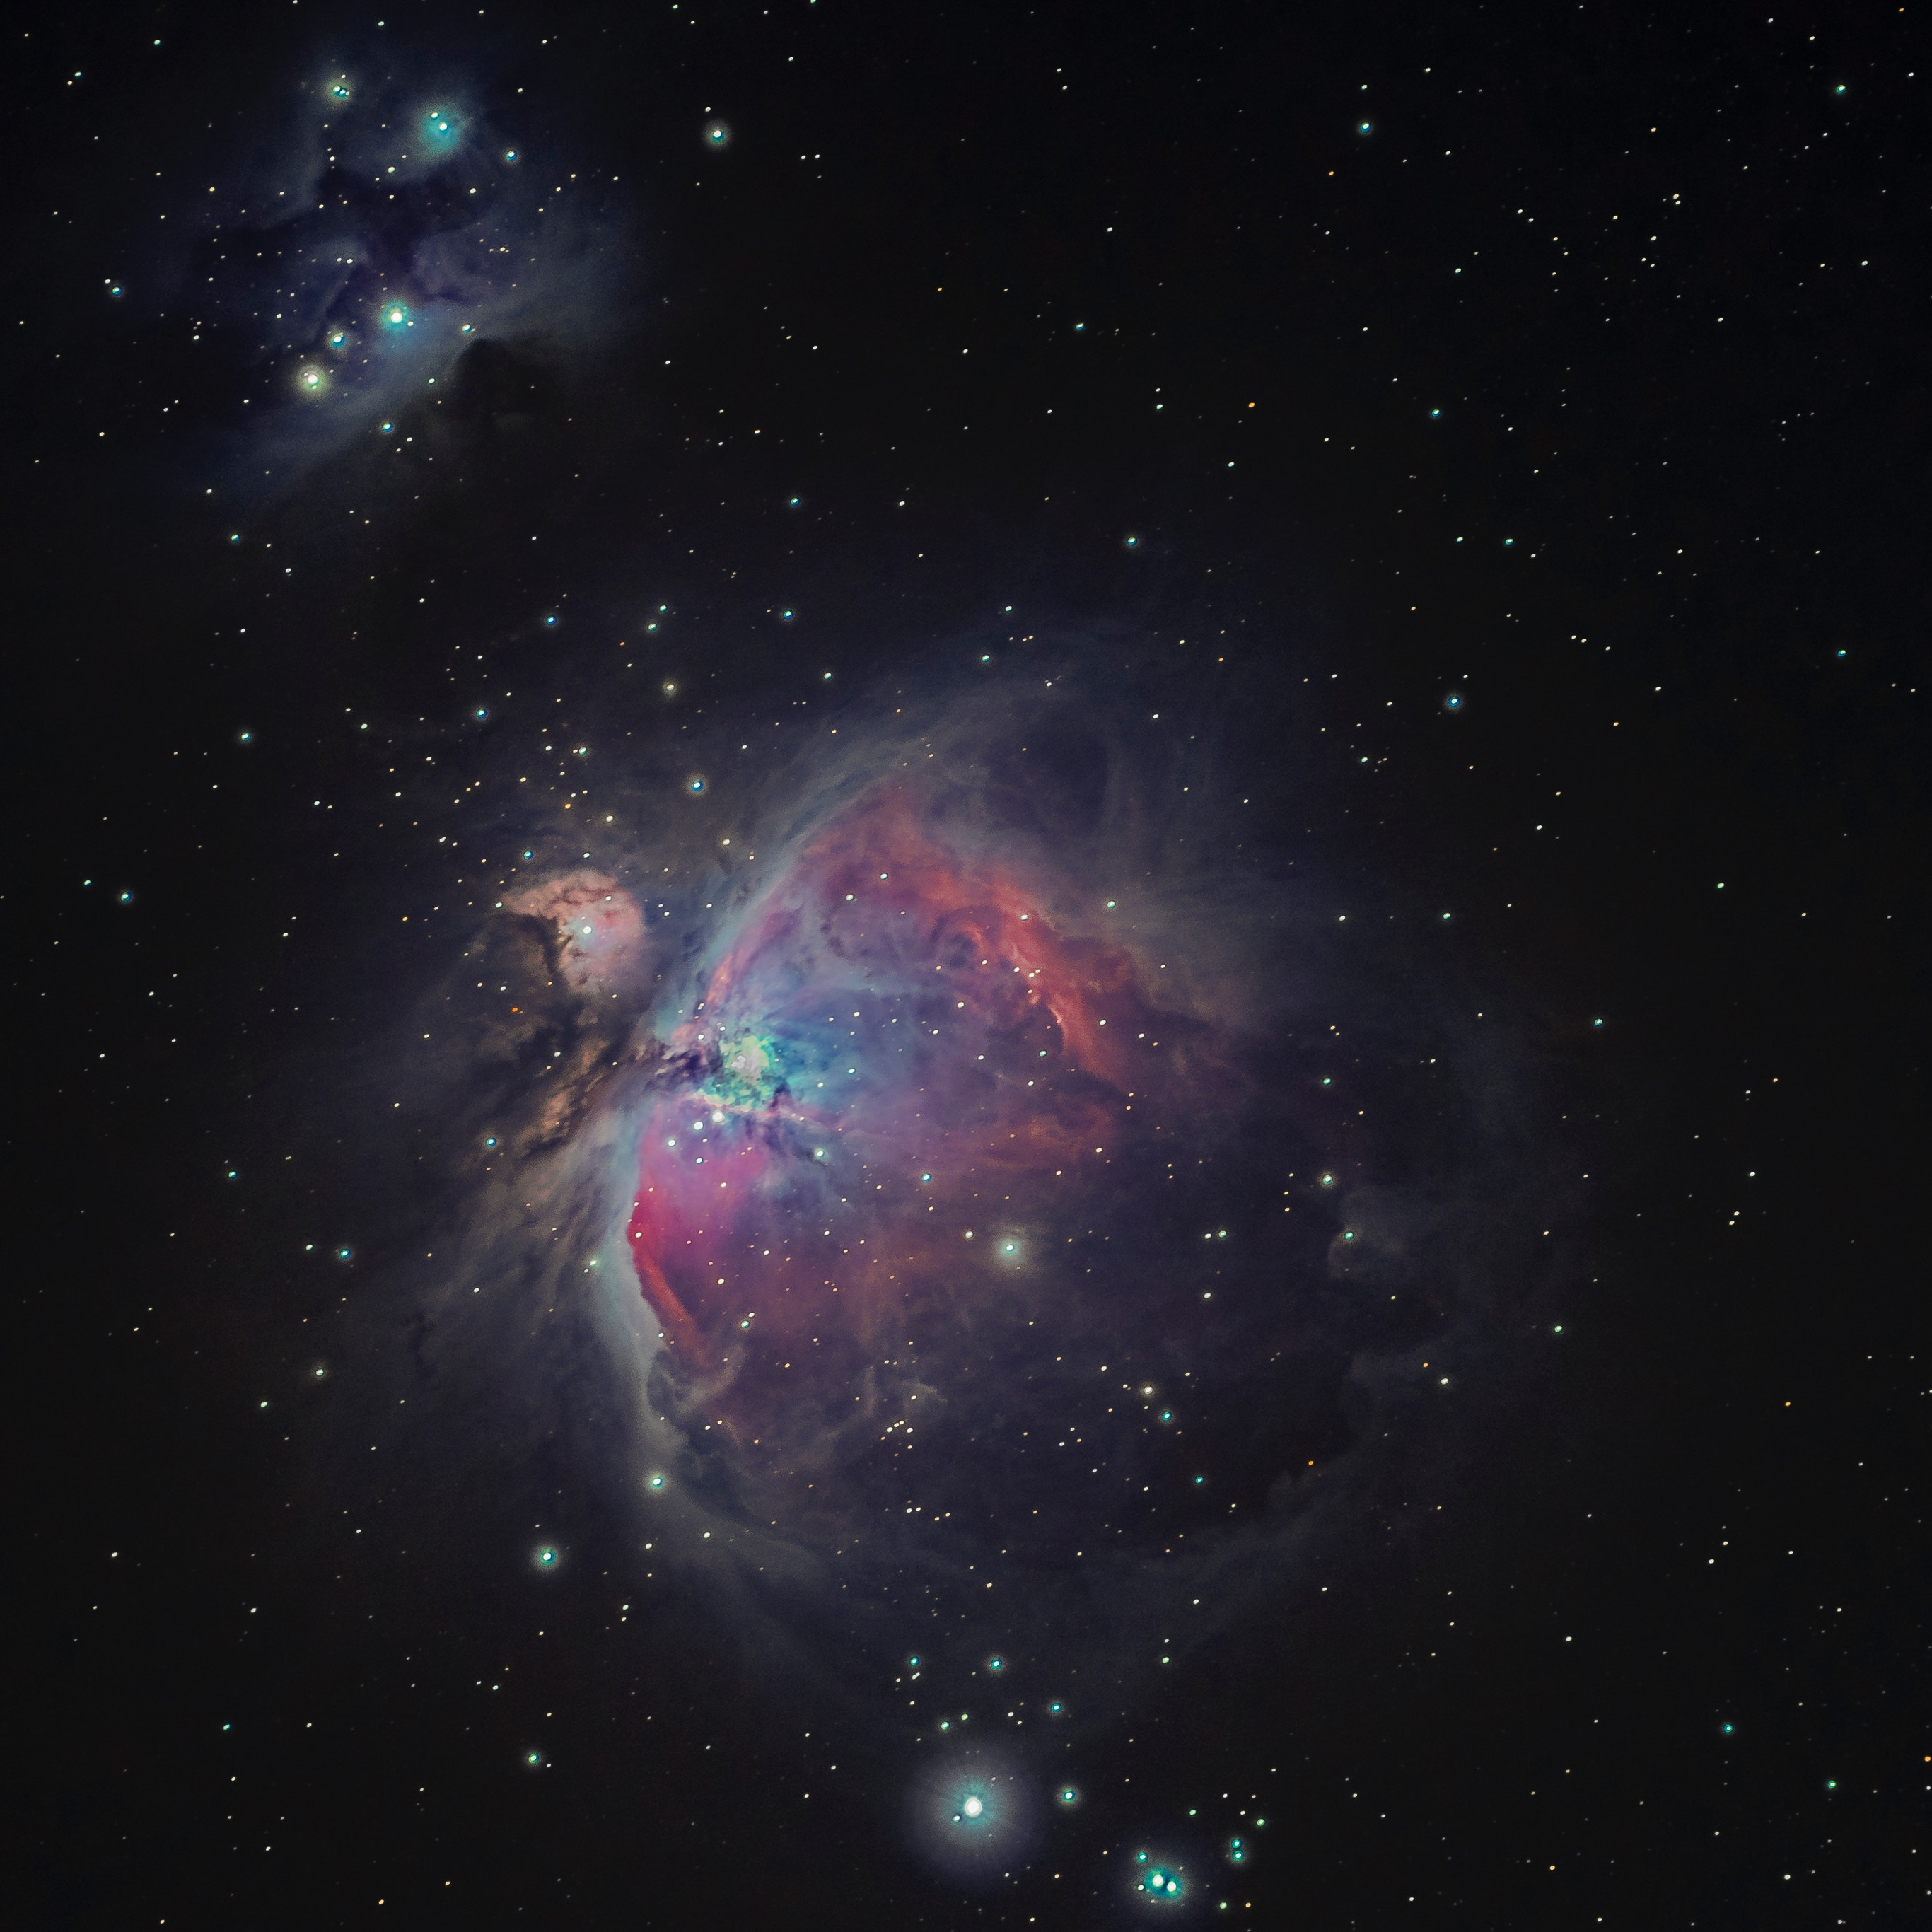 Wallpaper Weekends: Stargazing - Orion Nebula for Mac, iPad, iPhone, and Apple Watch